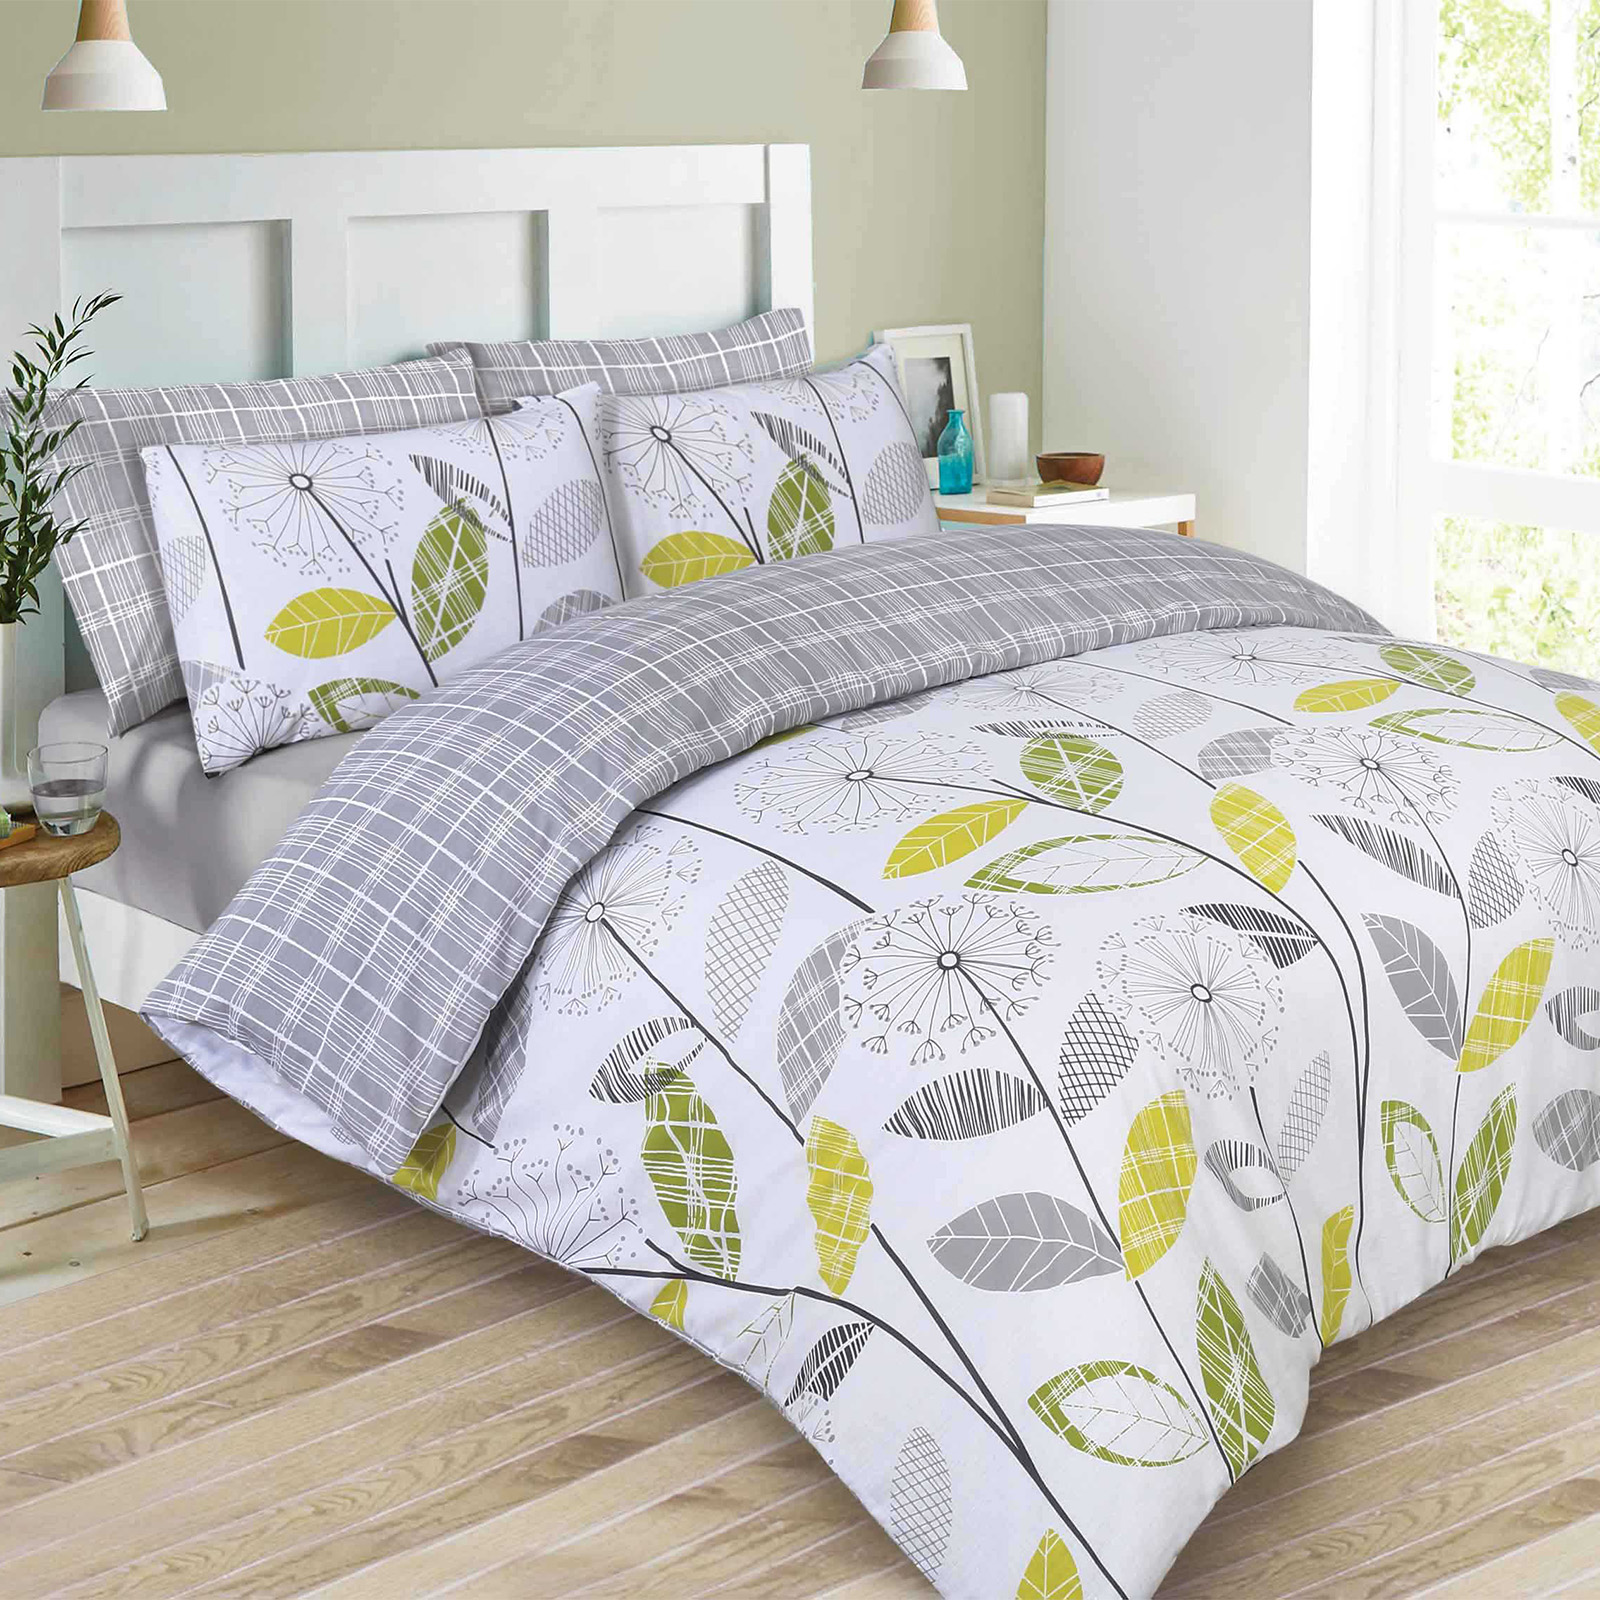 King Bed Duvet Cover Dreamscene Duvet Cover With Pillowcase Polycotton Bedding